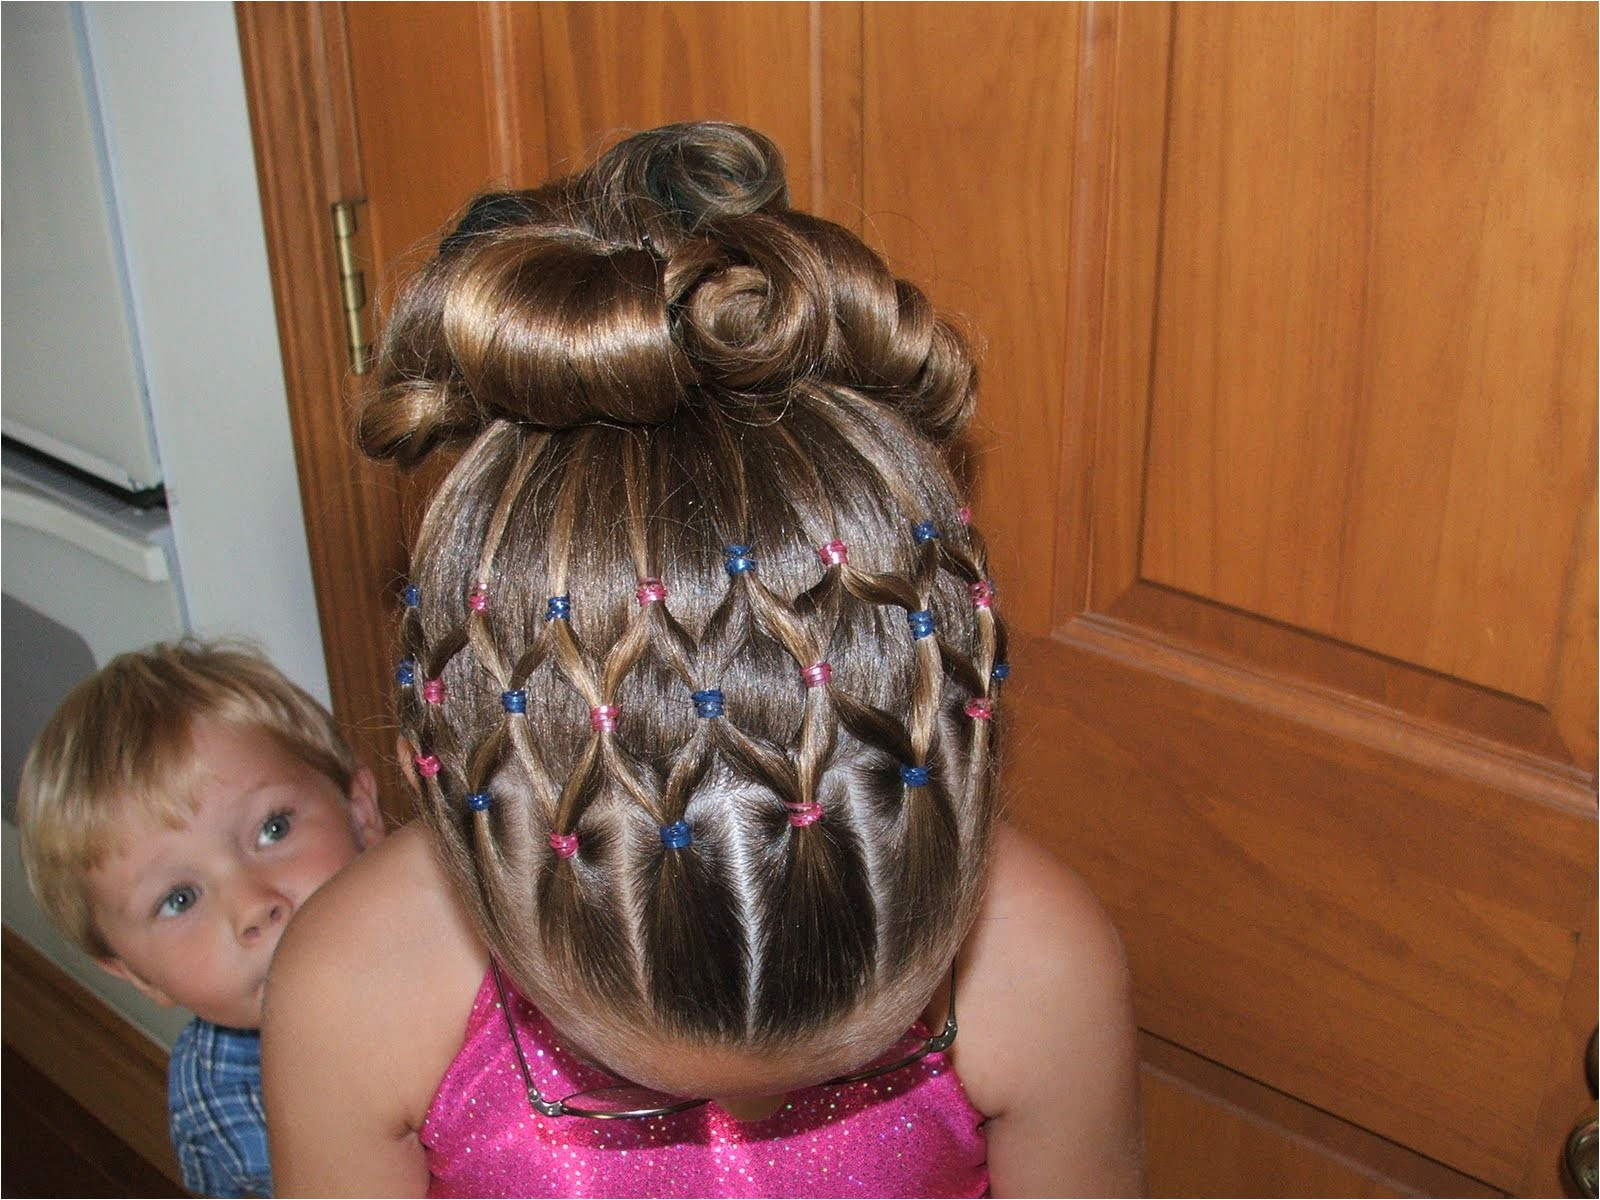 Cute Hairstyles for 13 Year Olds 10 Things to Consider before Choosing Cute Hairstyles for